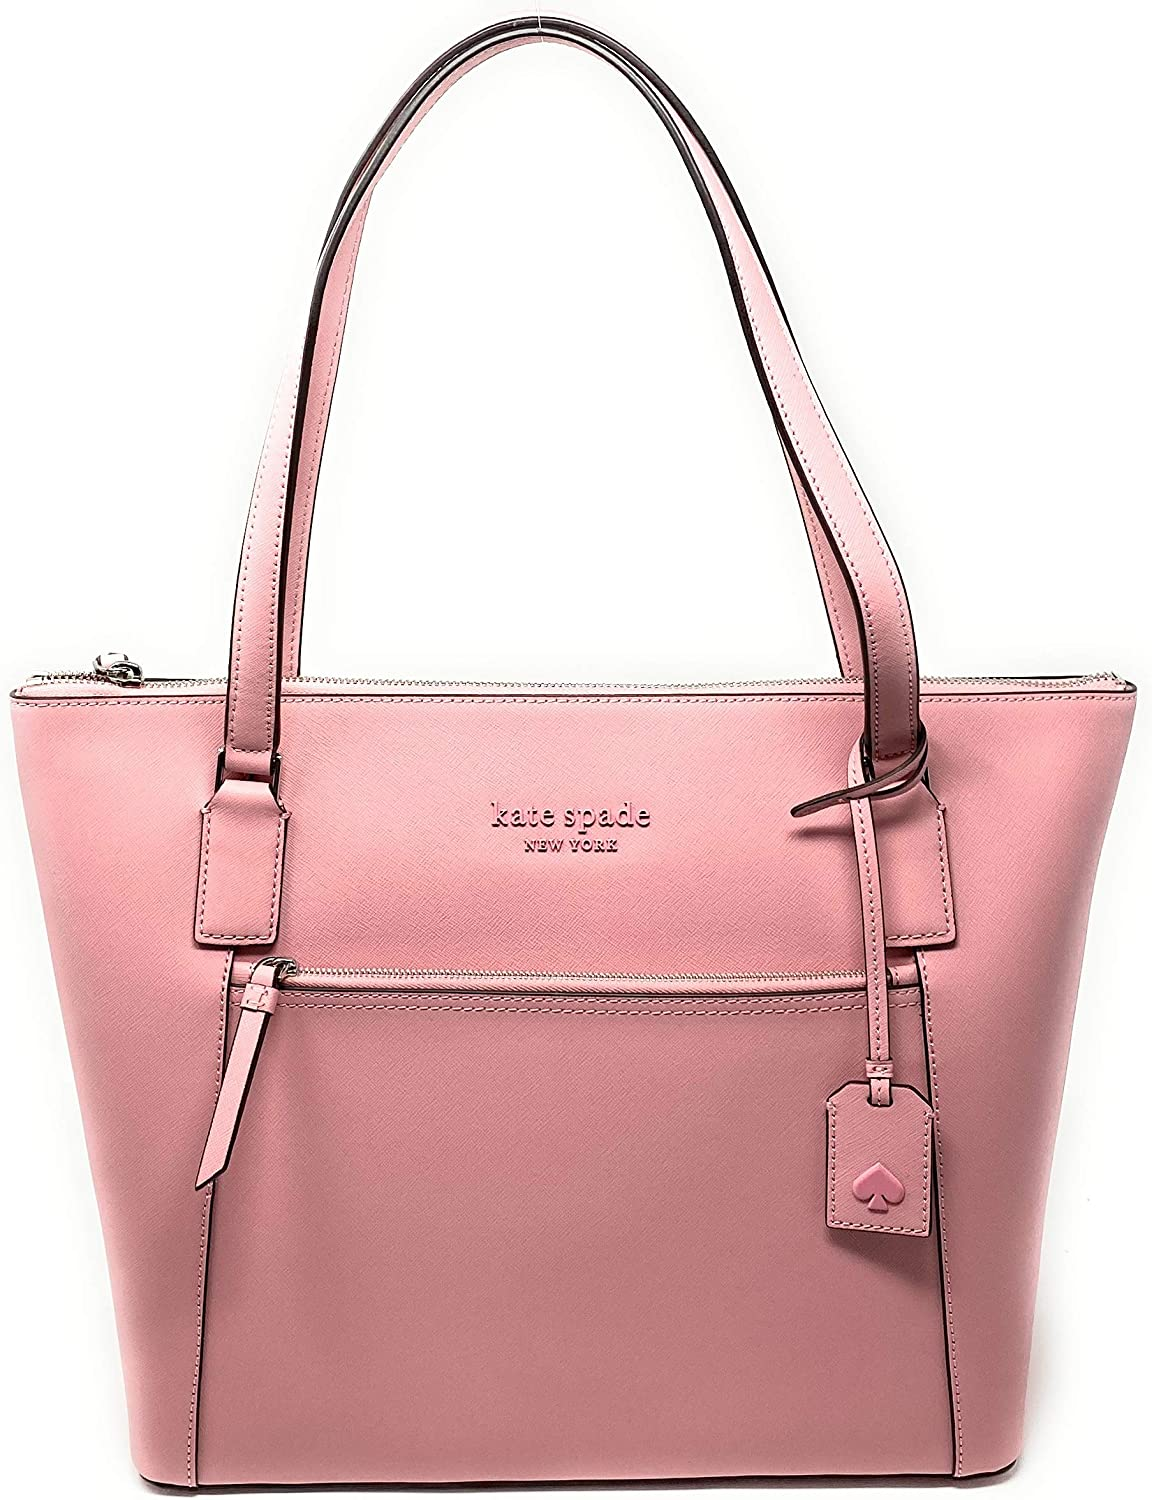 Kate Spade New York Cameron Pocket Womens Saffiano Leather Tote (Bright carnation)